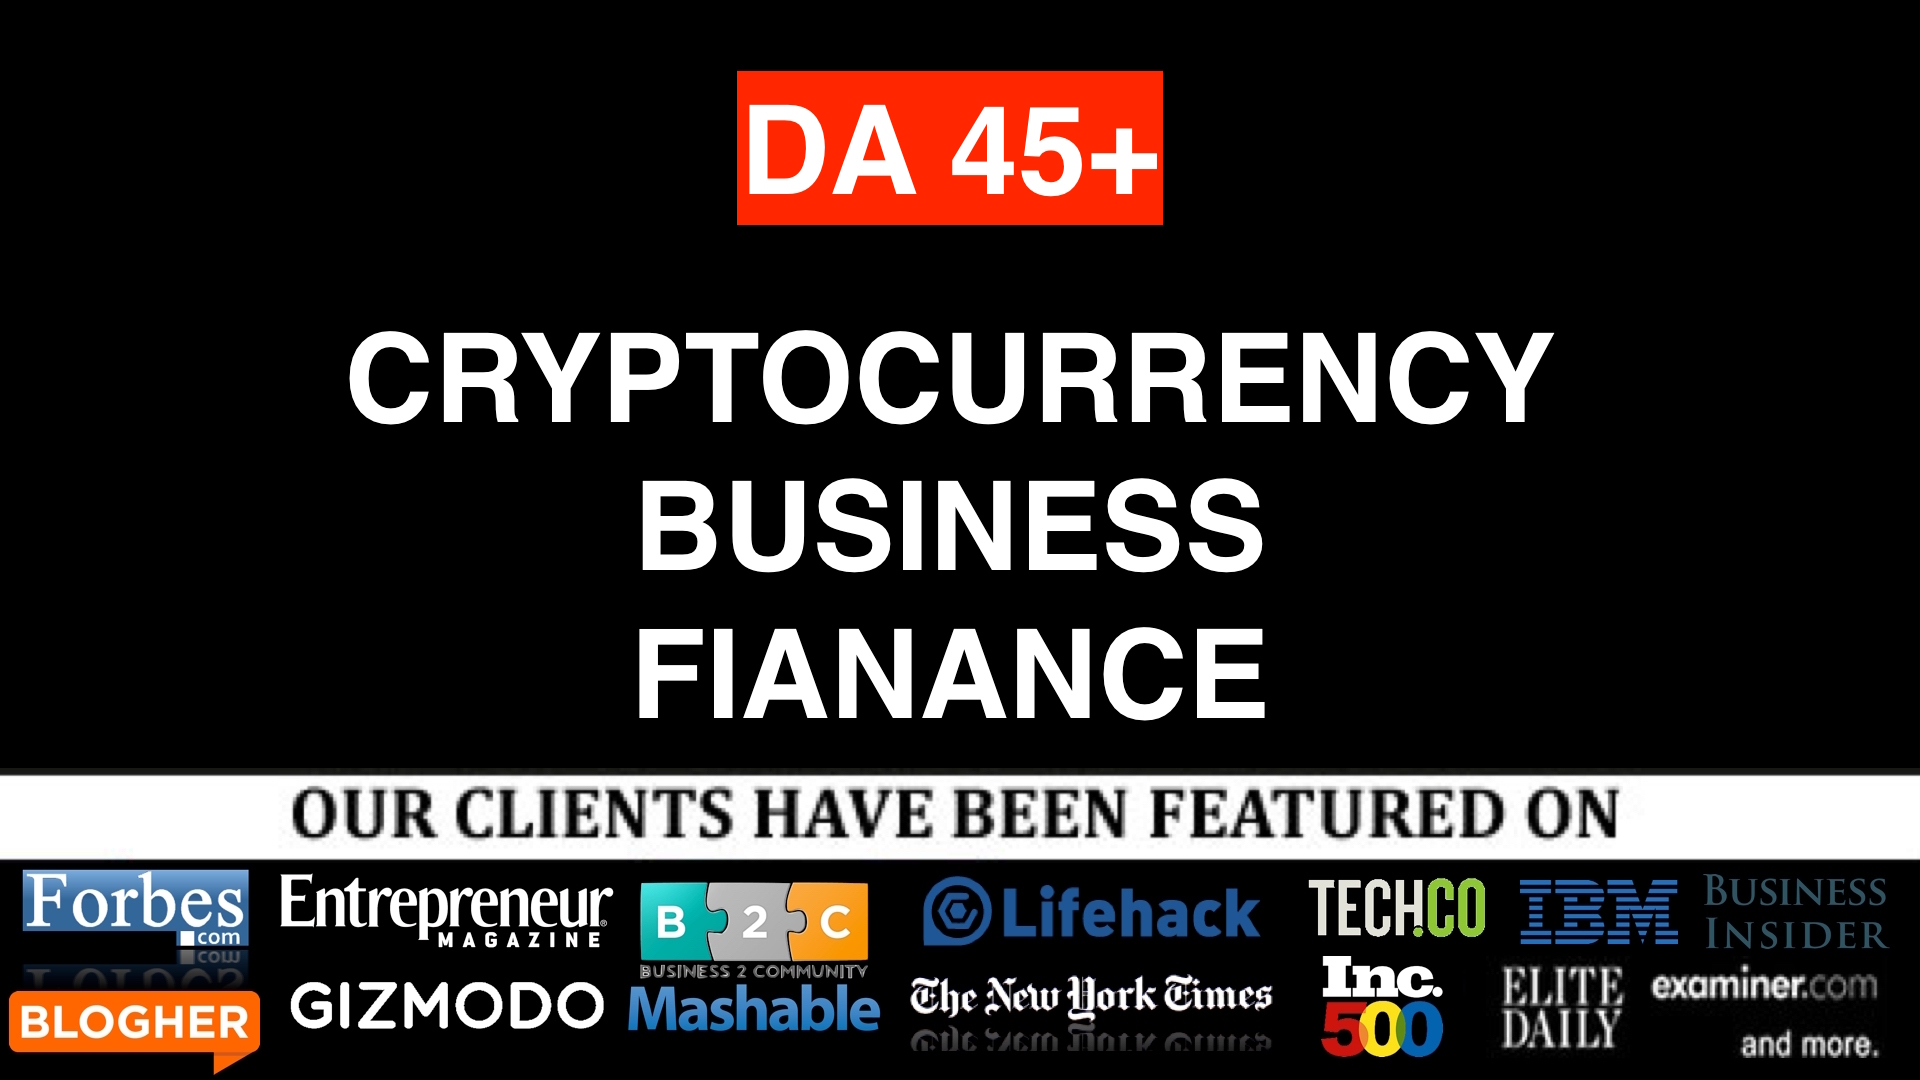 publish cryptocurrency and technology guest post on da 45 blog